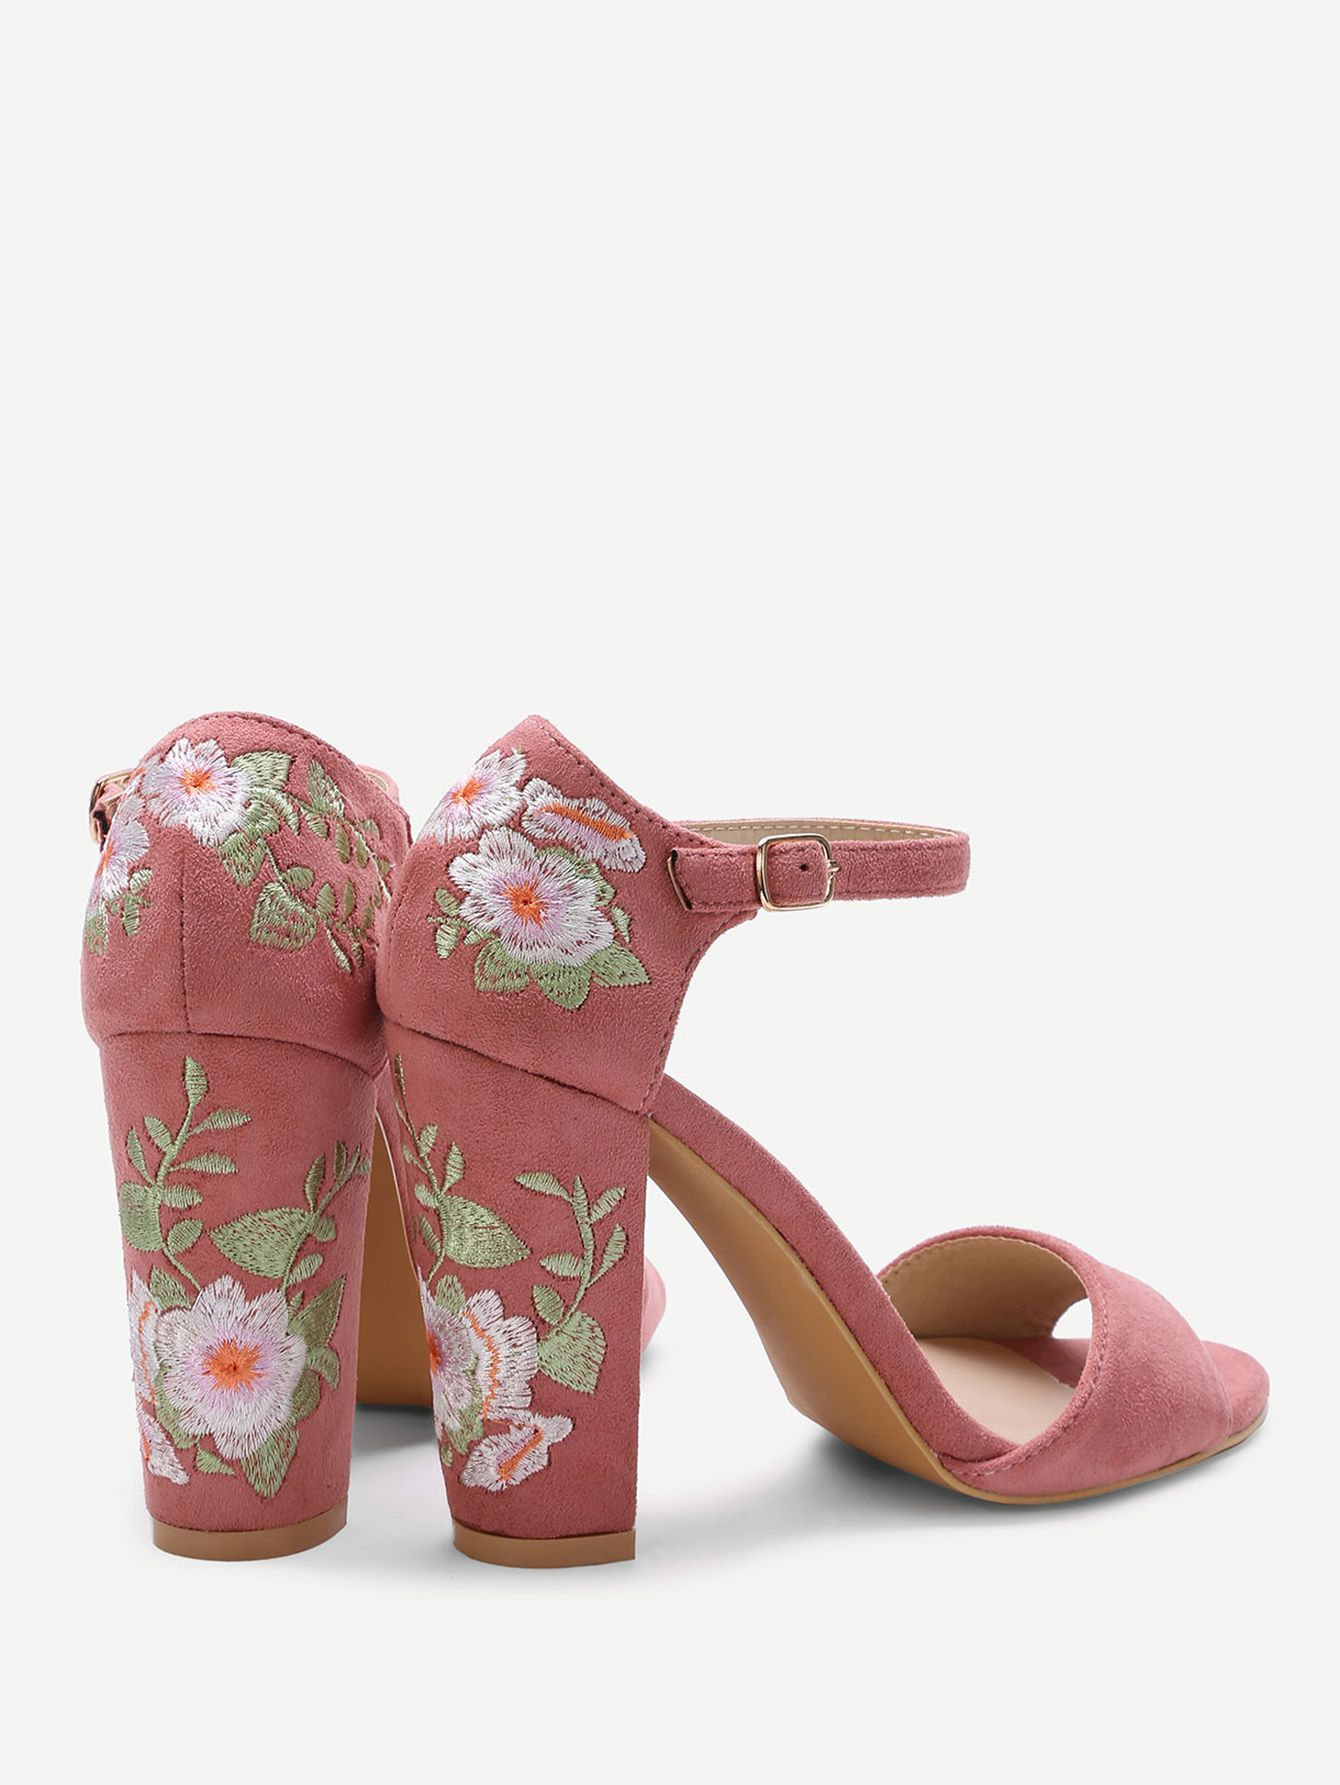 Pink flower embroidery chunky heel sandals lookbook pinterest shop pink flower embroidery chunky heel sandals online shein offers pink flower embroidery chunky heel sandals more to fit your fashionable needs mightylinksfo